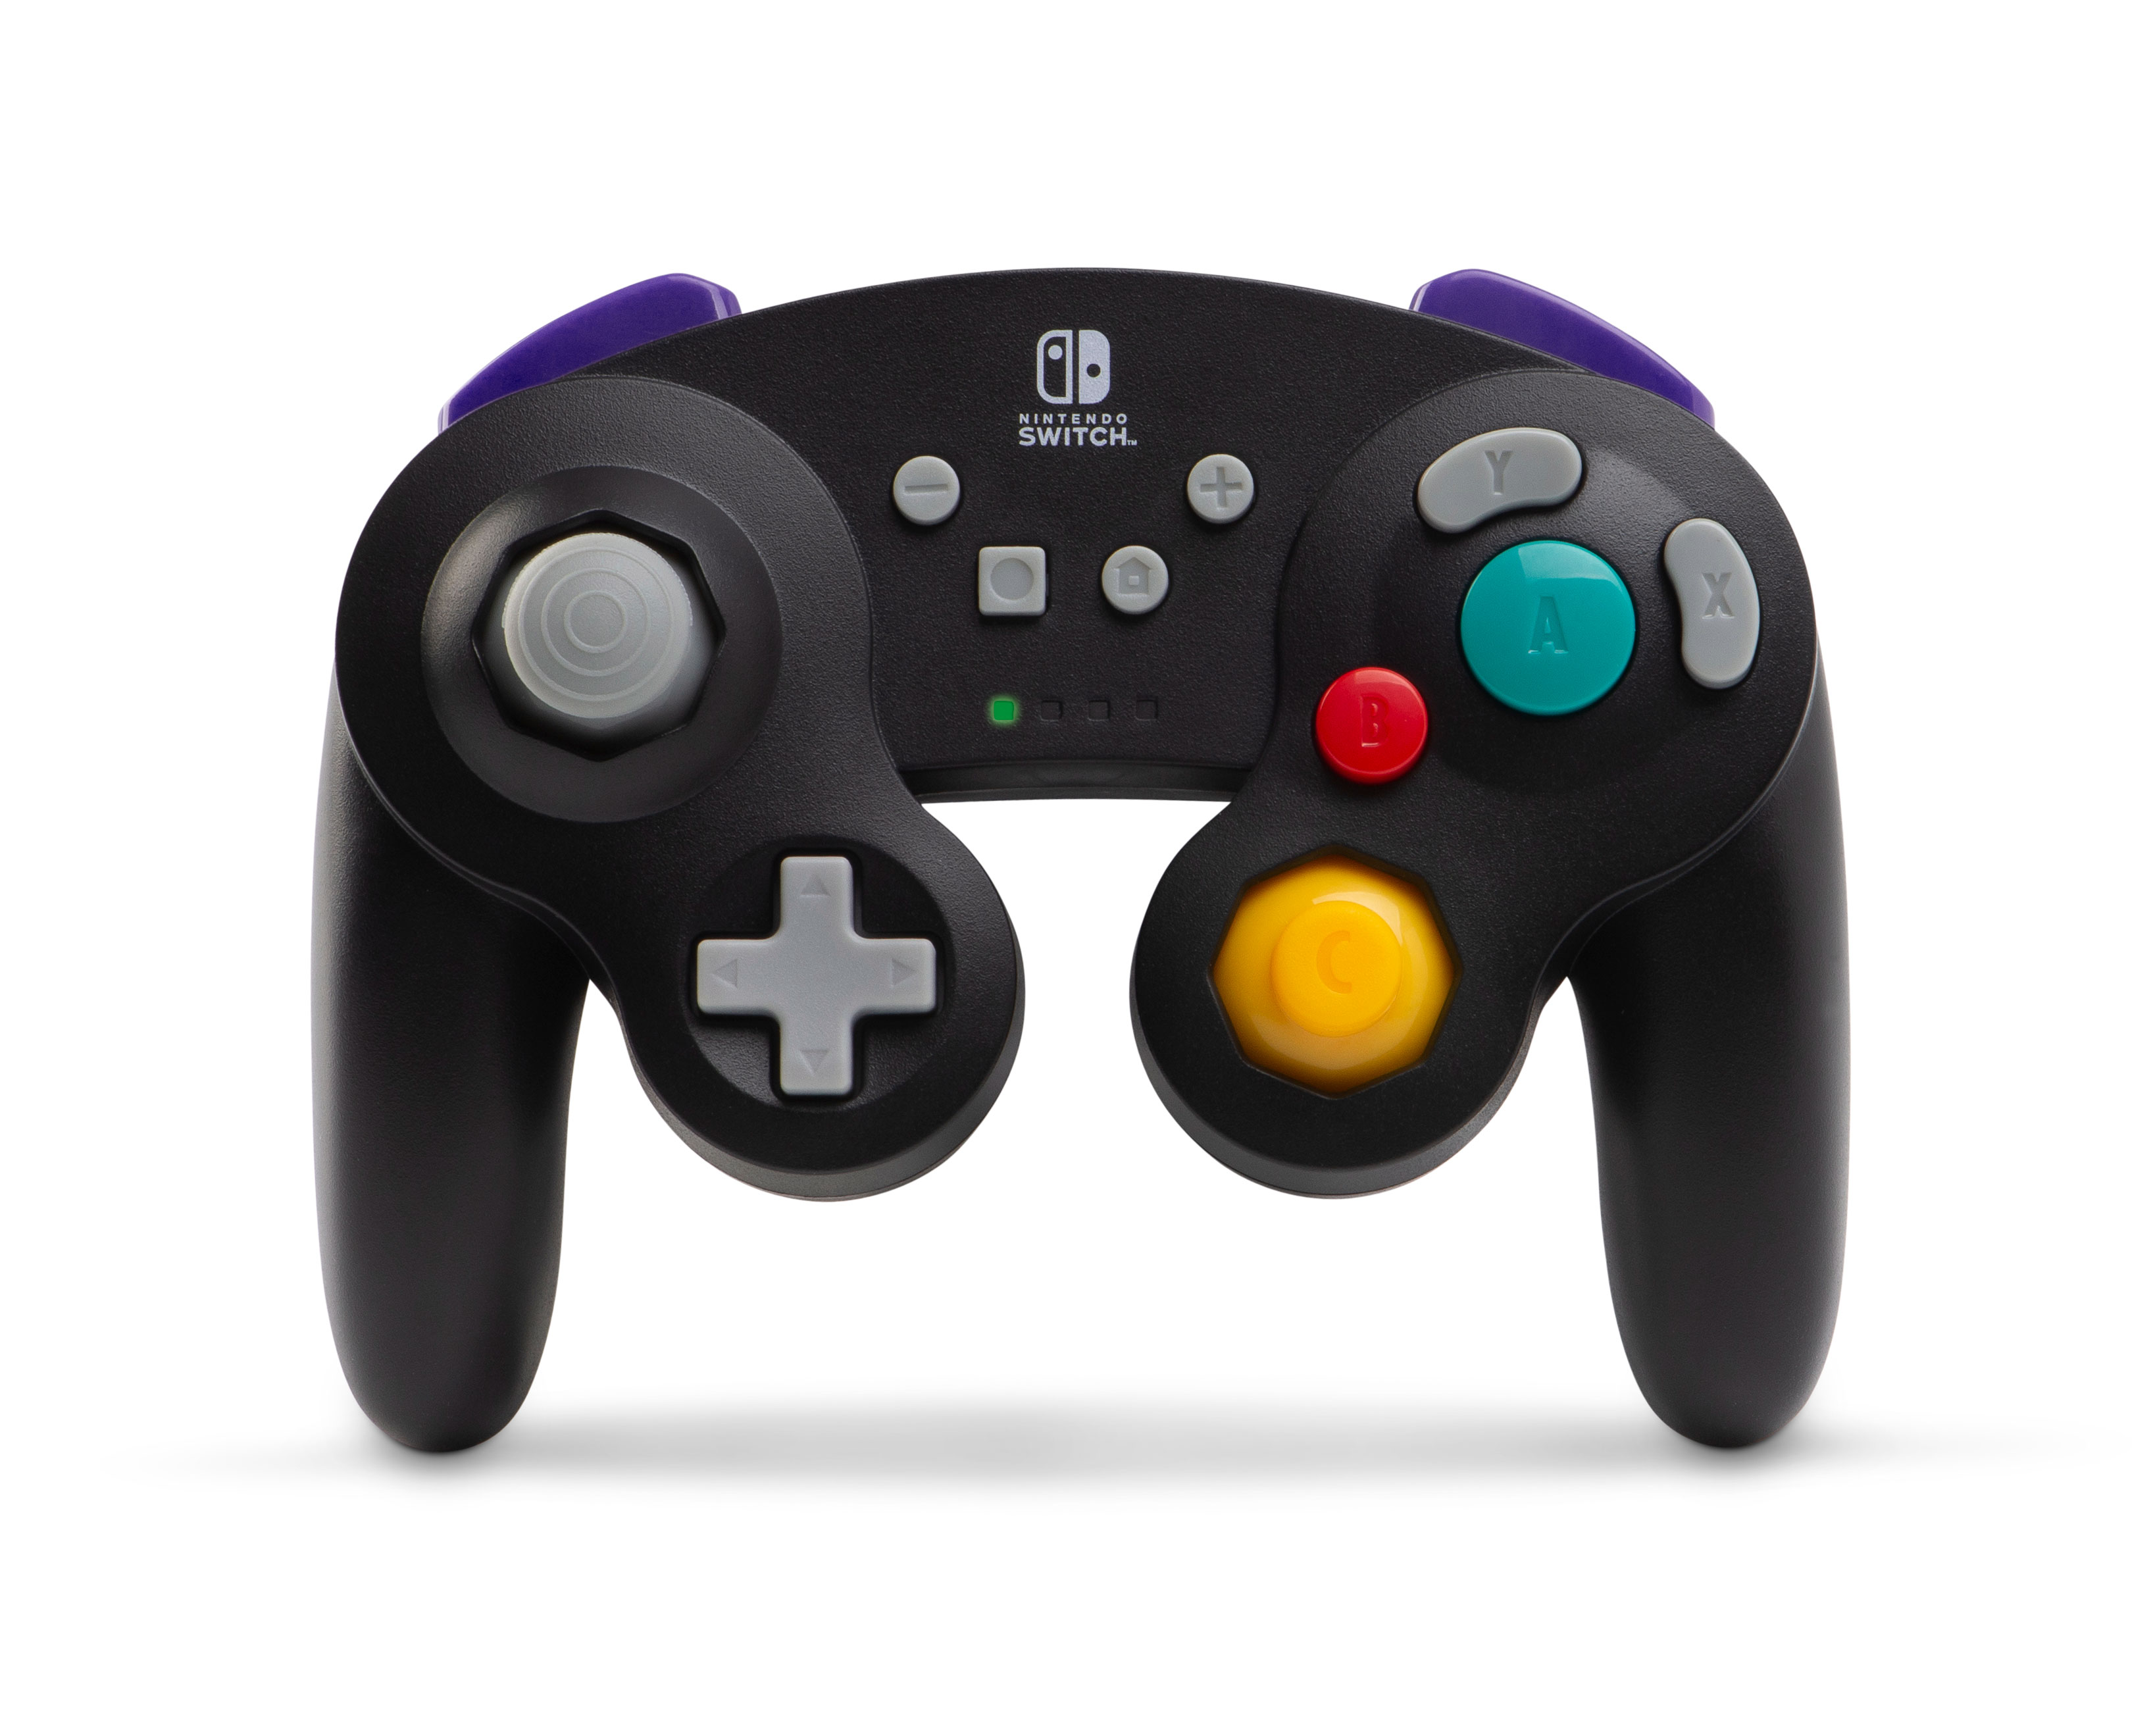 Review: PowerA Wireless GameCube Style Controller for Switch